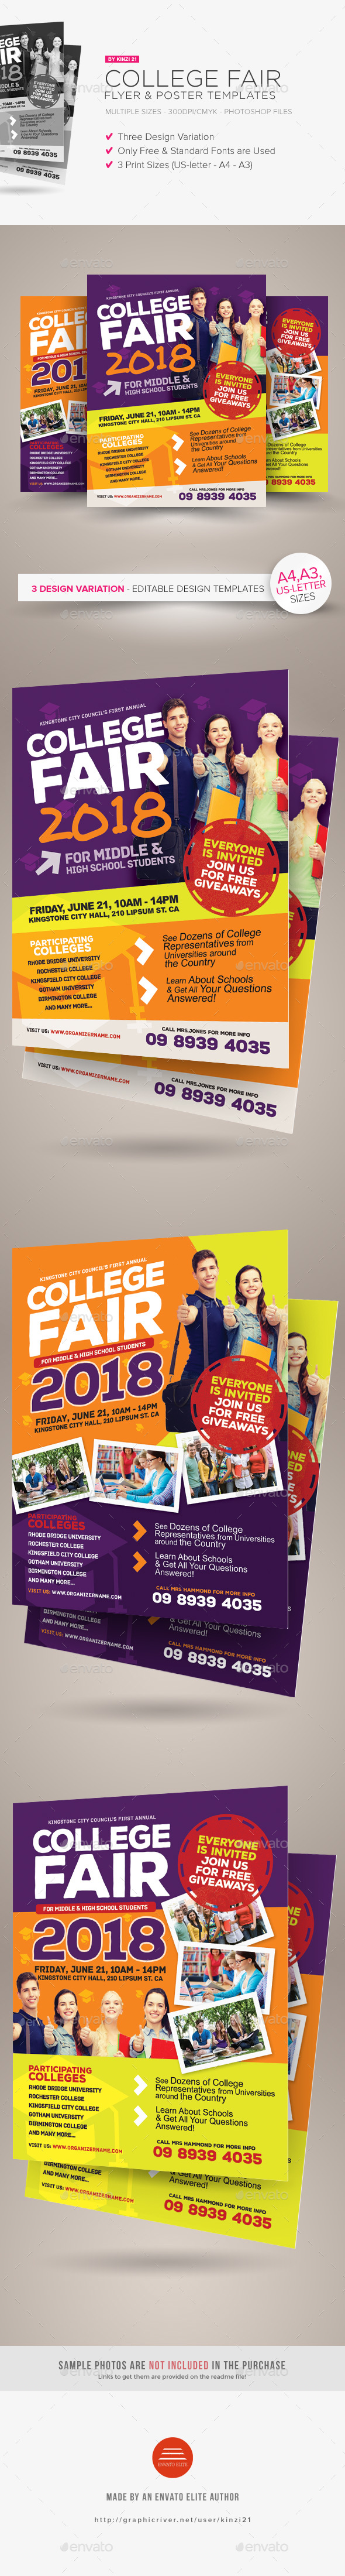 College Fair Flyer Templates by kinzi21 | GraphicRiver